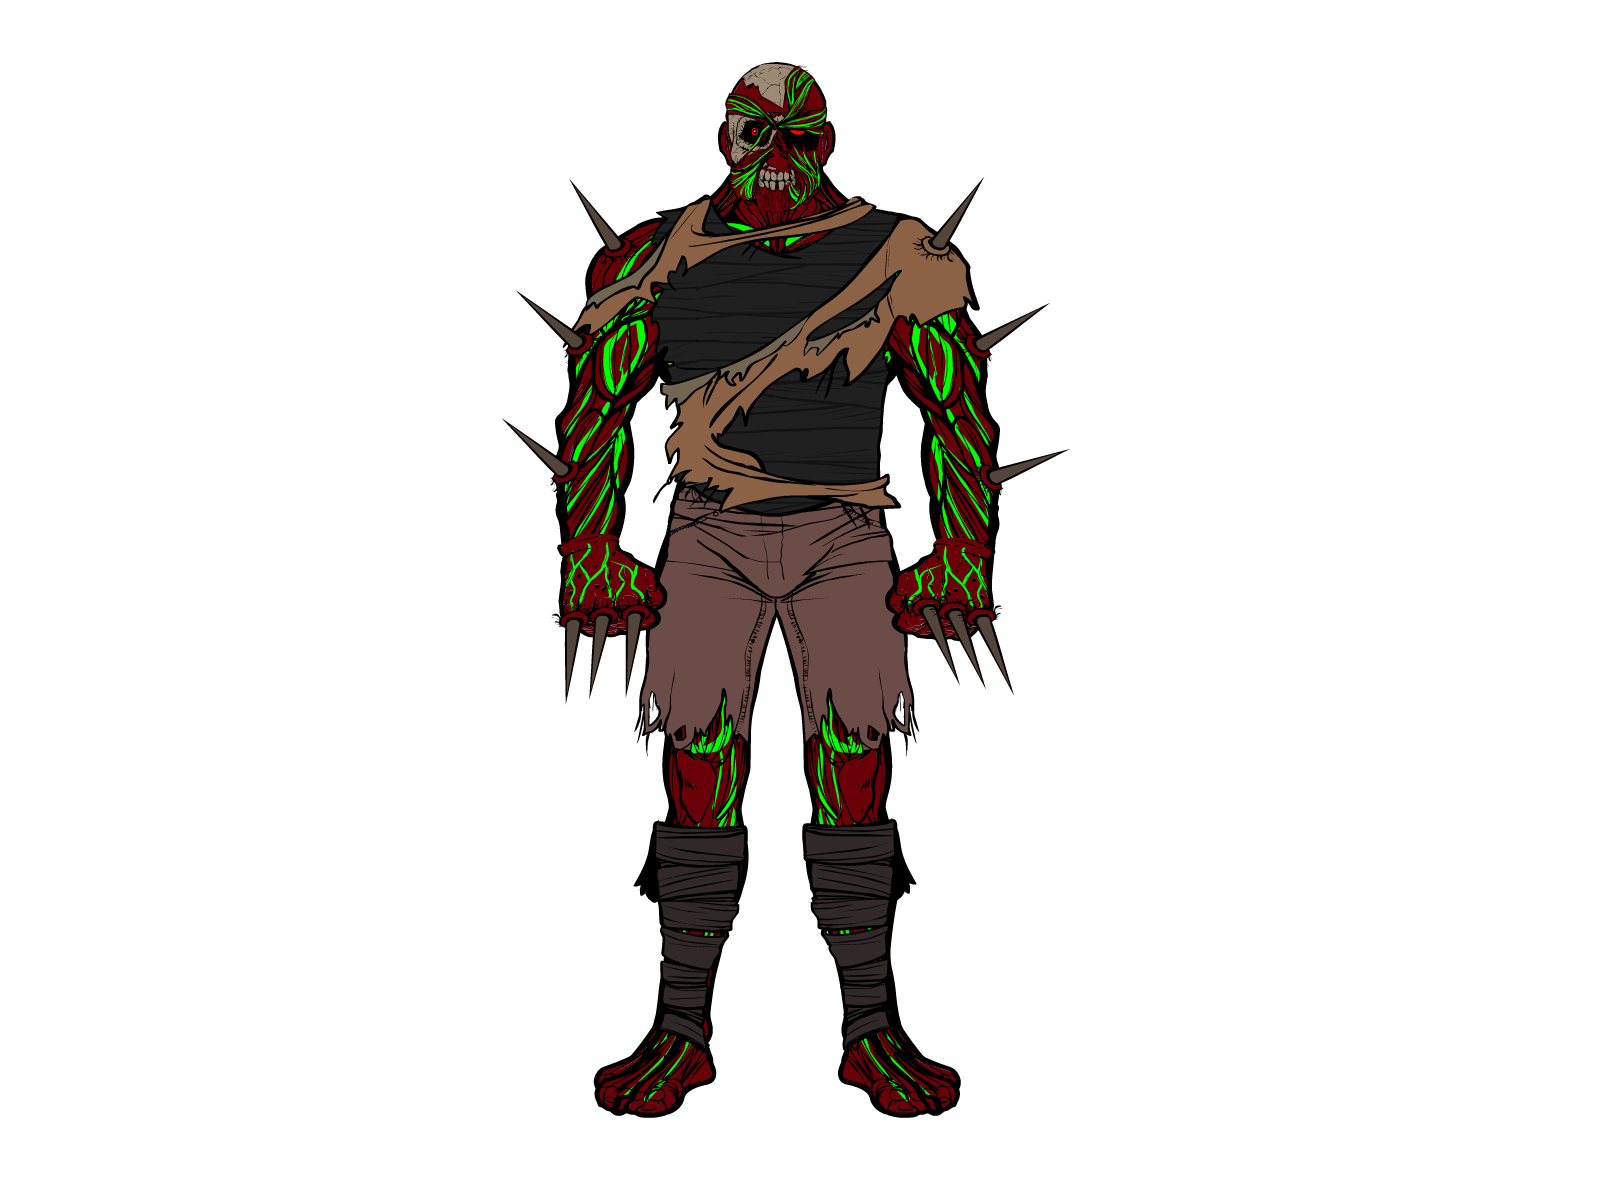 http://www.heromachine.com/wp-content/legacy/forum-image-uploads/nha247/2012/03/Zombie-Transformed.png